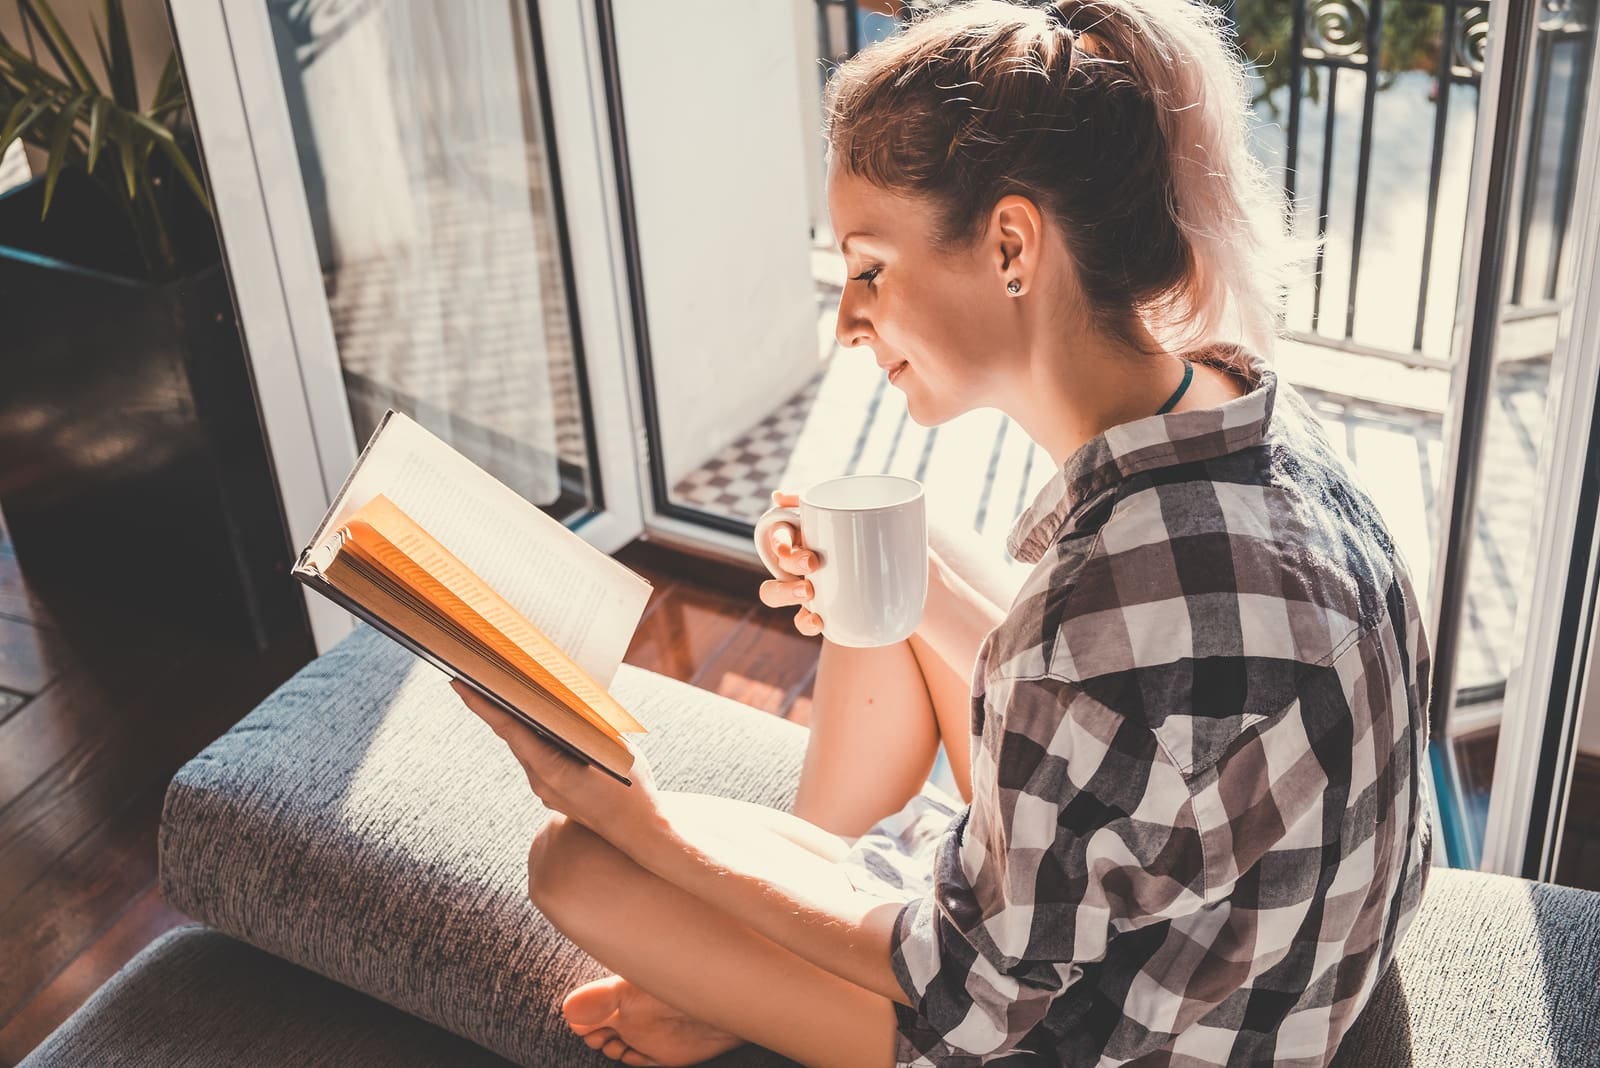 pretty woman sitting at opened window drinking coffee and reading a book